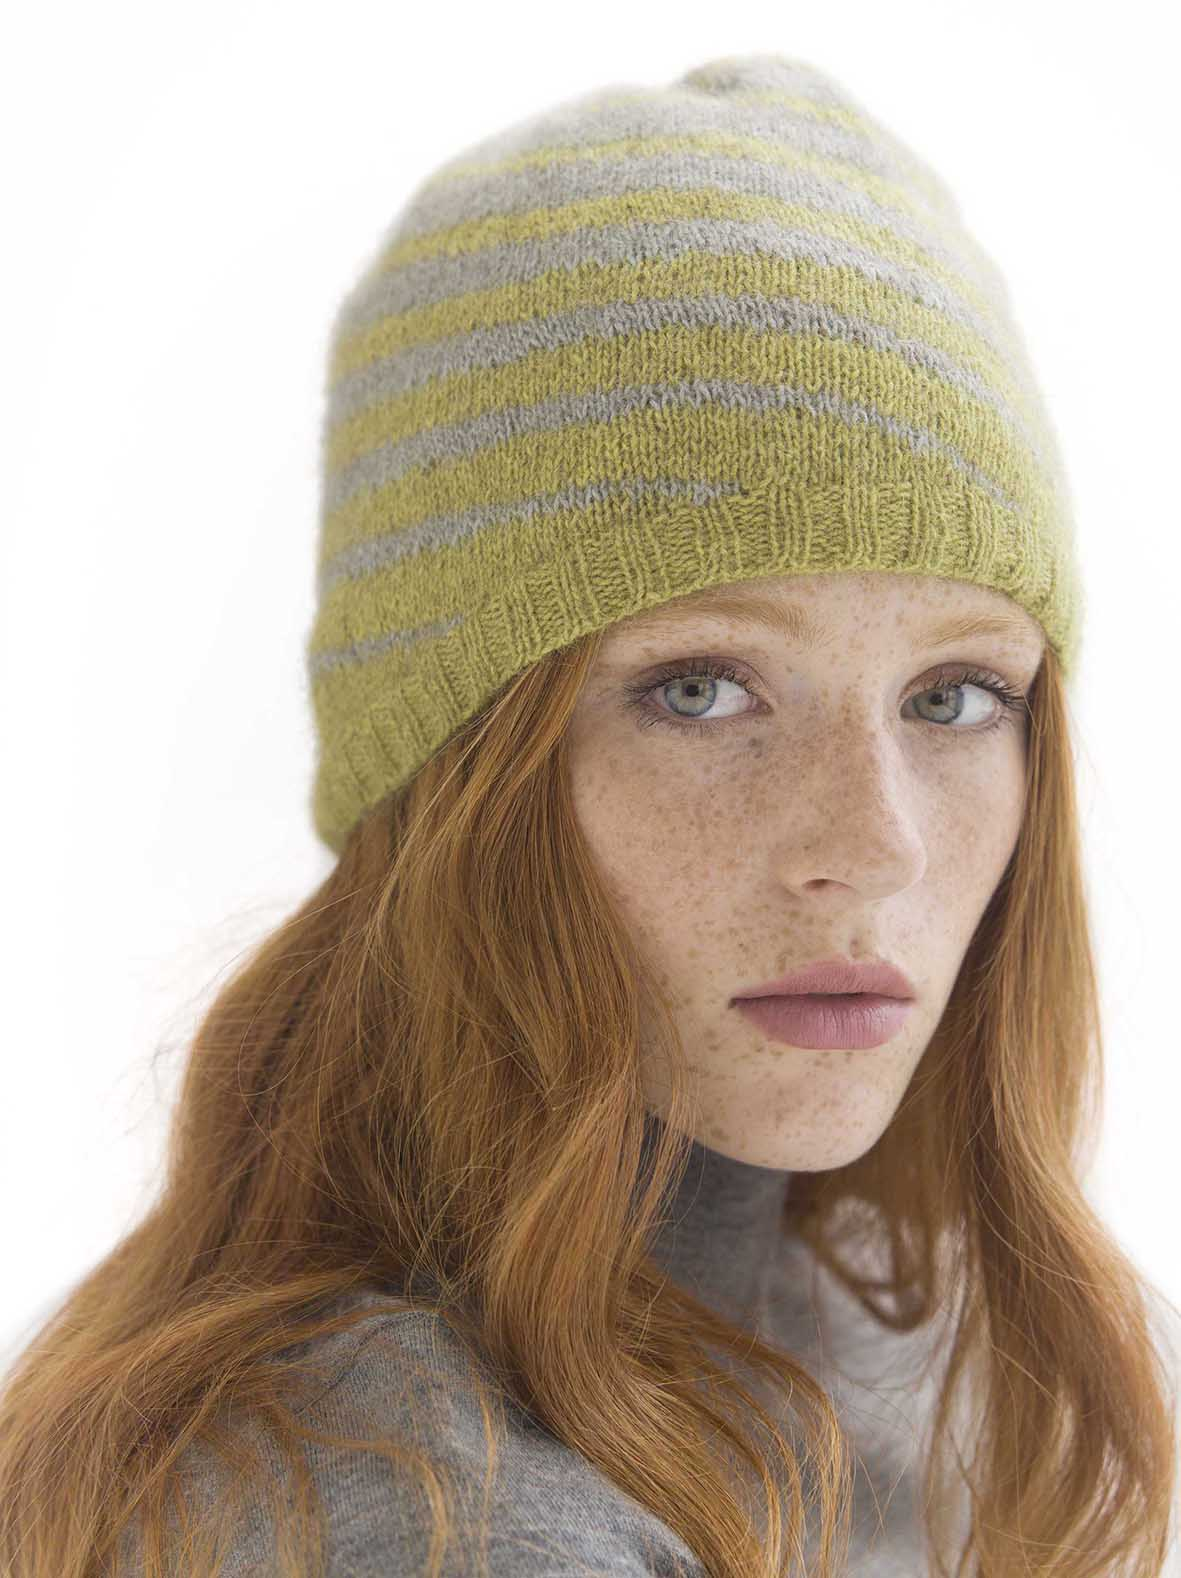 CORIOLIS HAT- Designed by Lisa Silverman